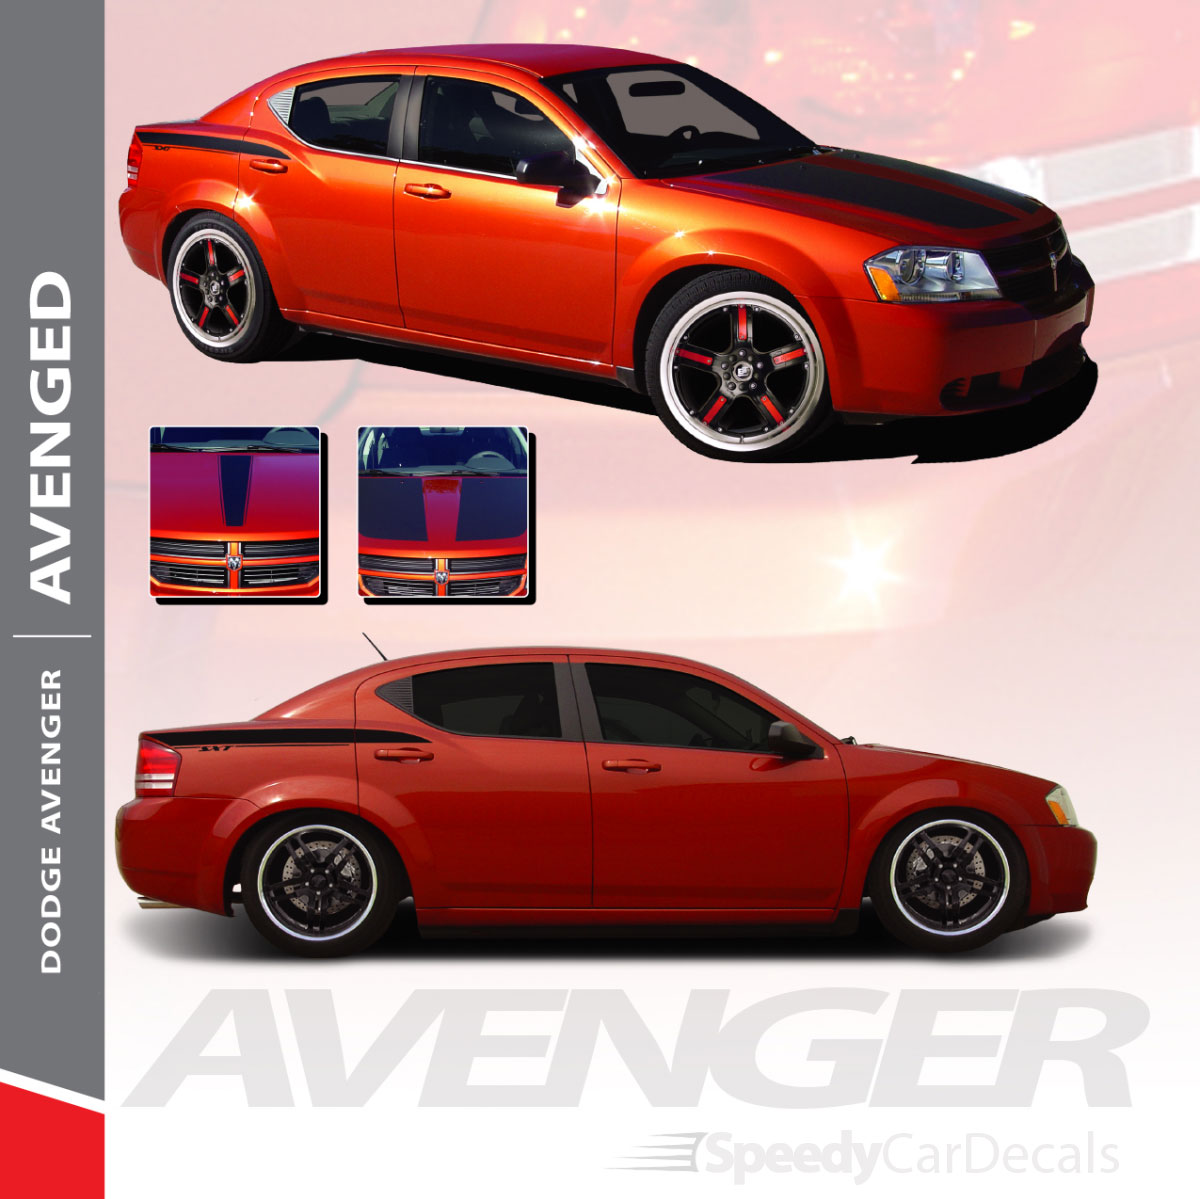 2008 2015 Hood Trunk Stripes Decals Graphics for Dodge Avenger 3M